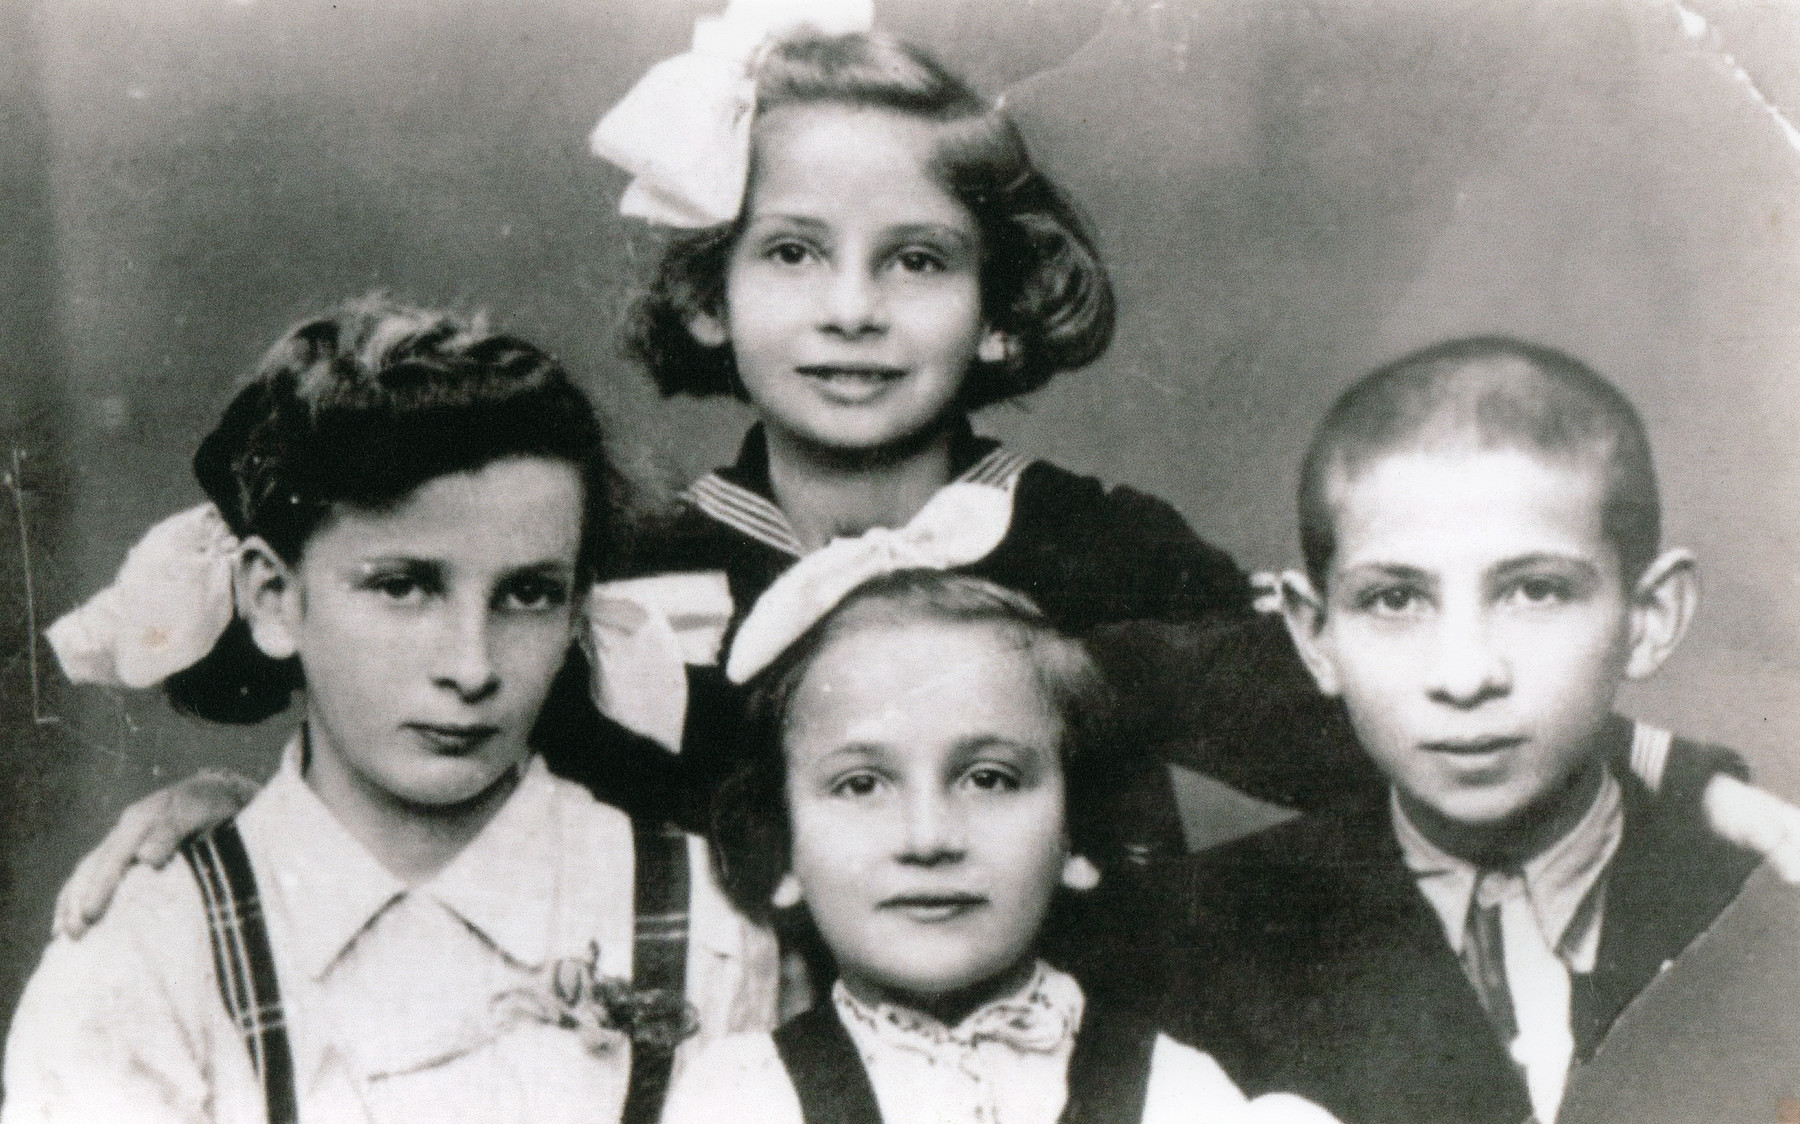 Yaffa, Sara, Tzippora and Shimon Landau.  The children escaped with their parents from Bochnia to Romania.